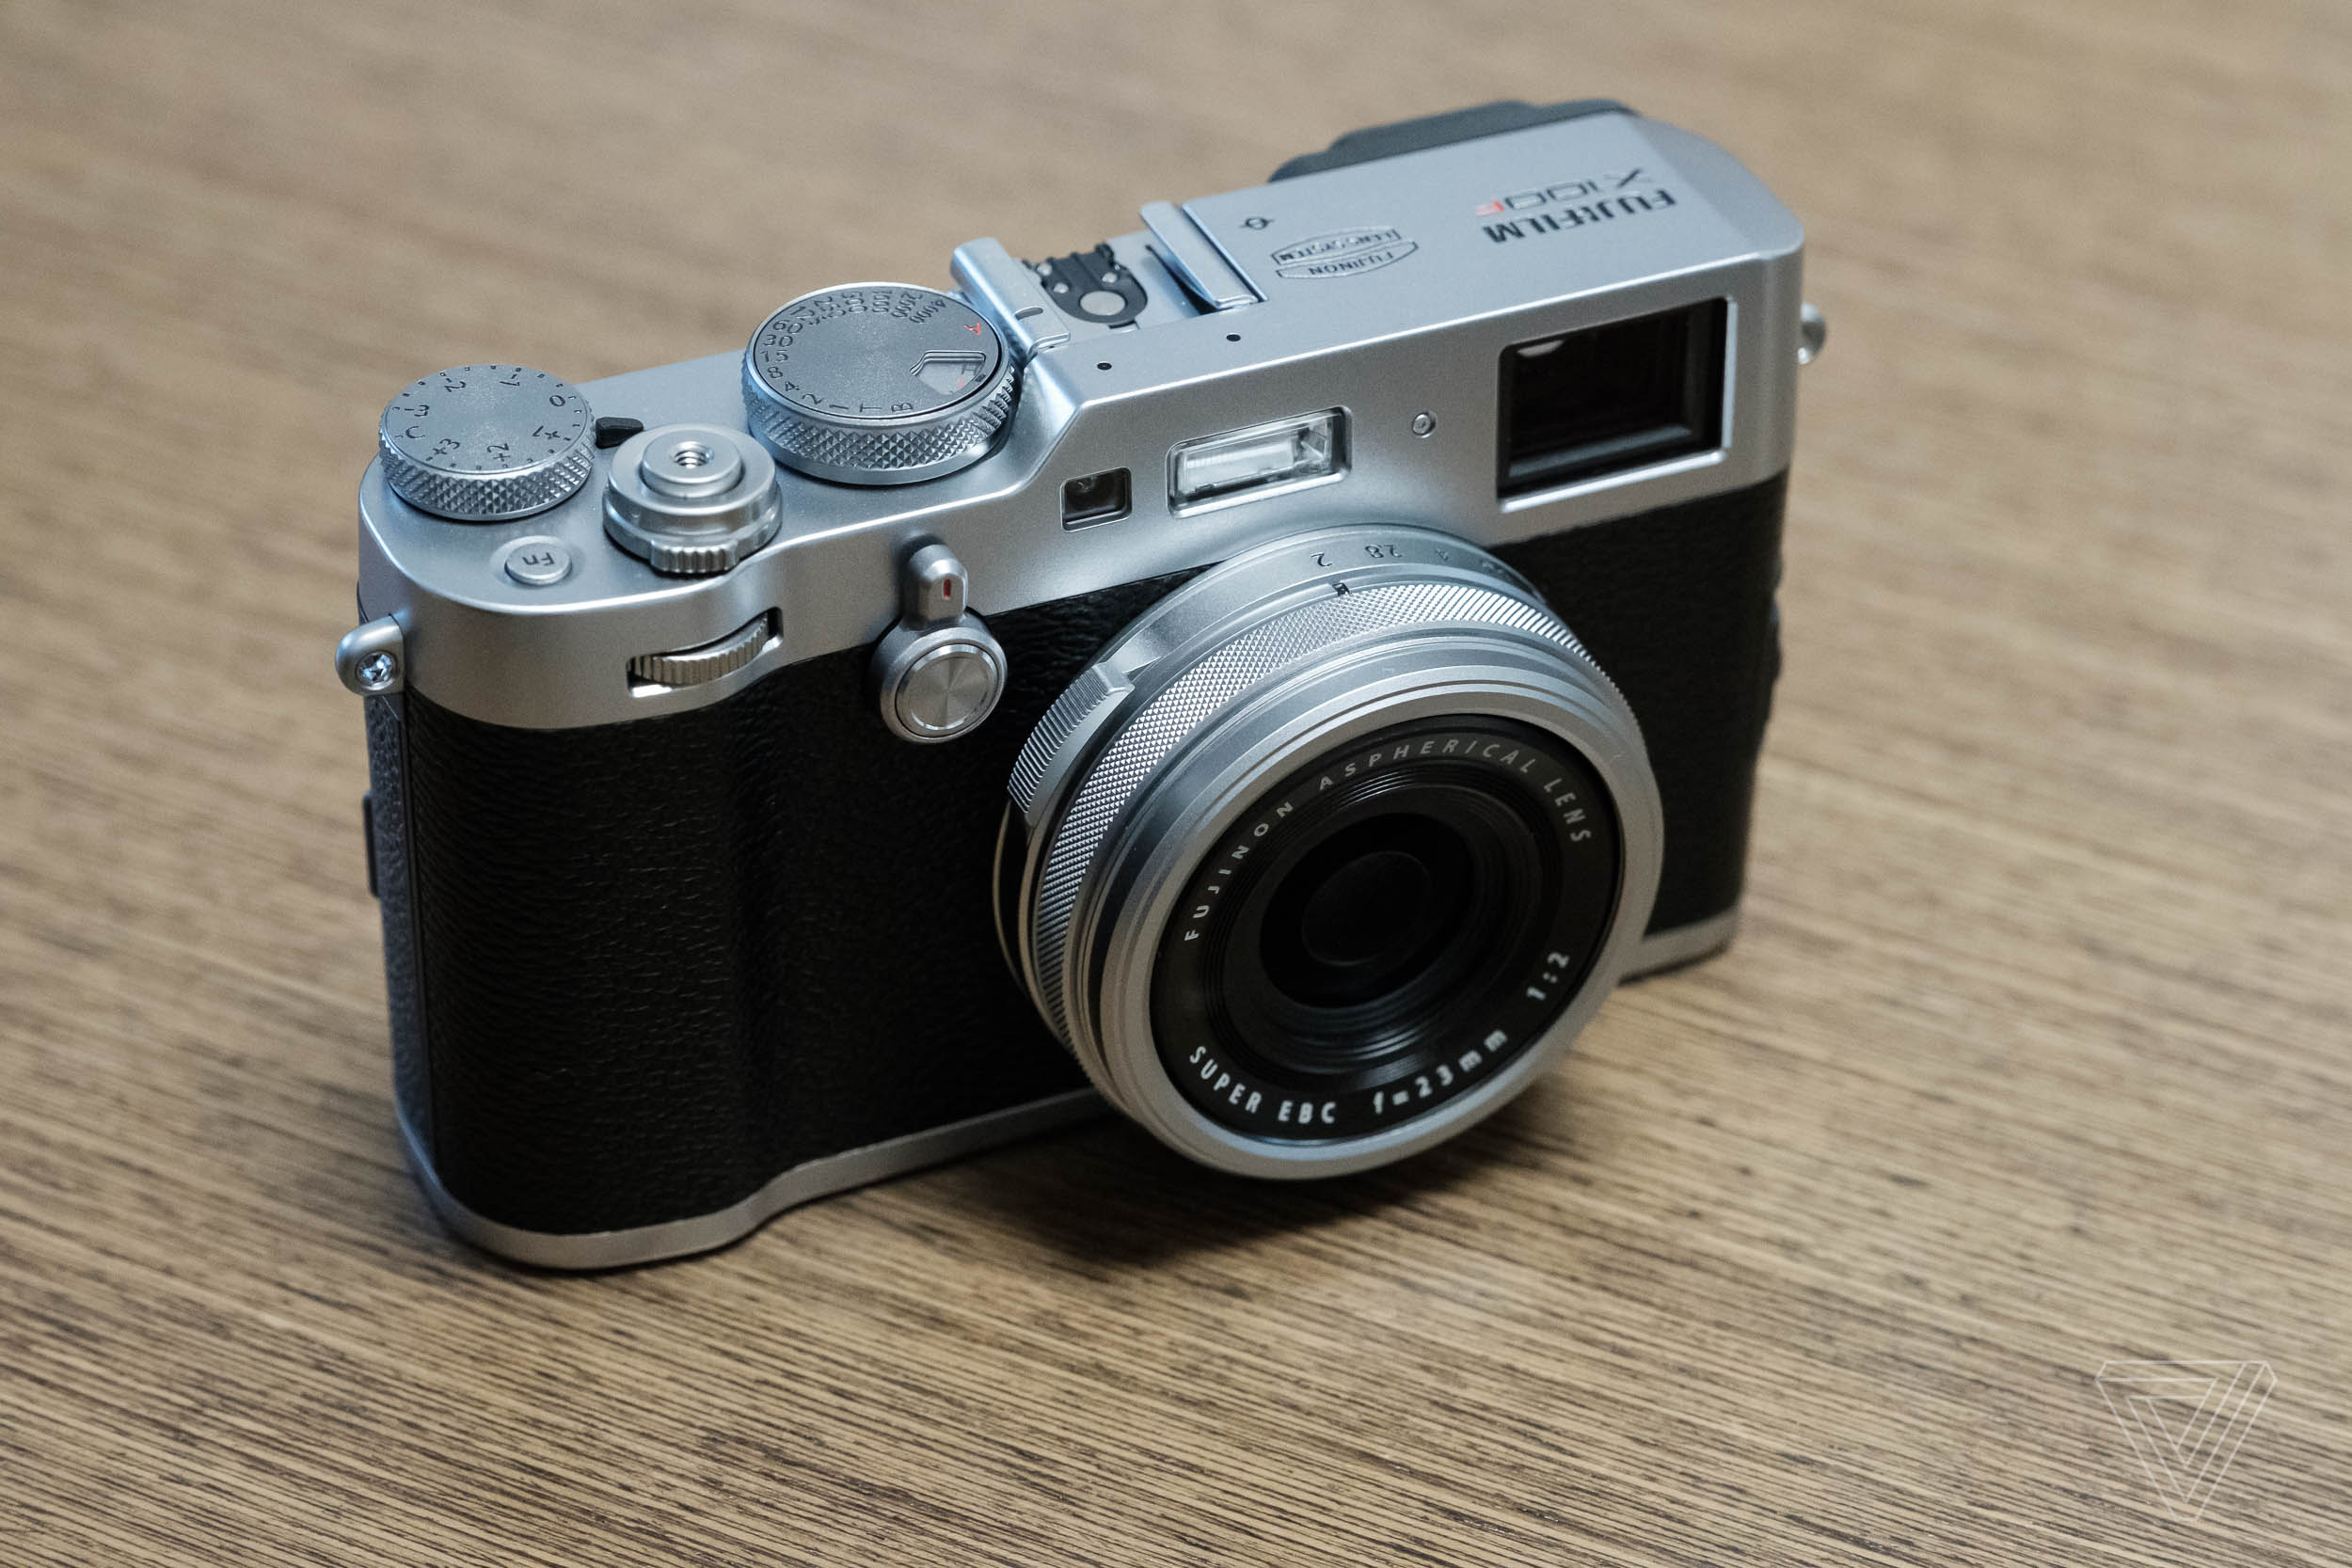 Hands on with Fujifilm's new X100F and X-T20 - The Verge